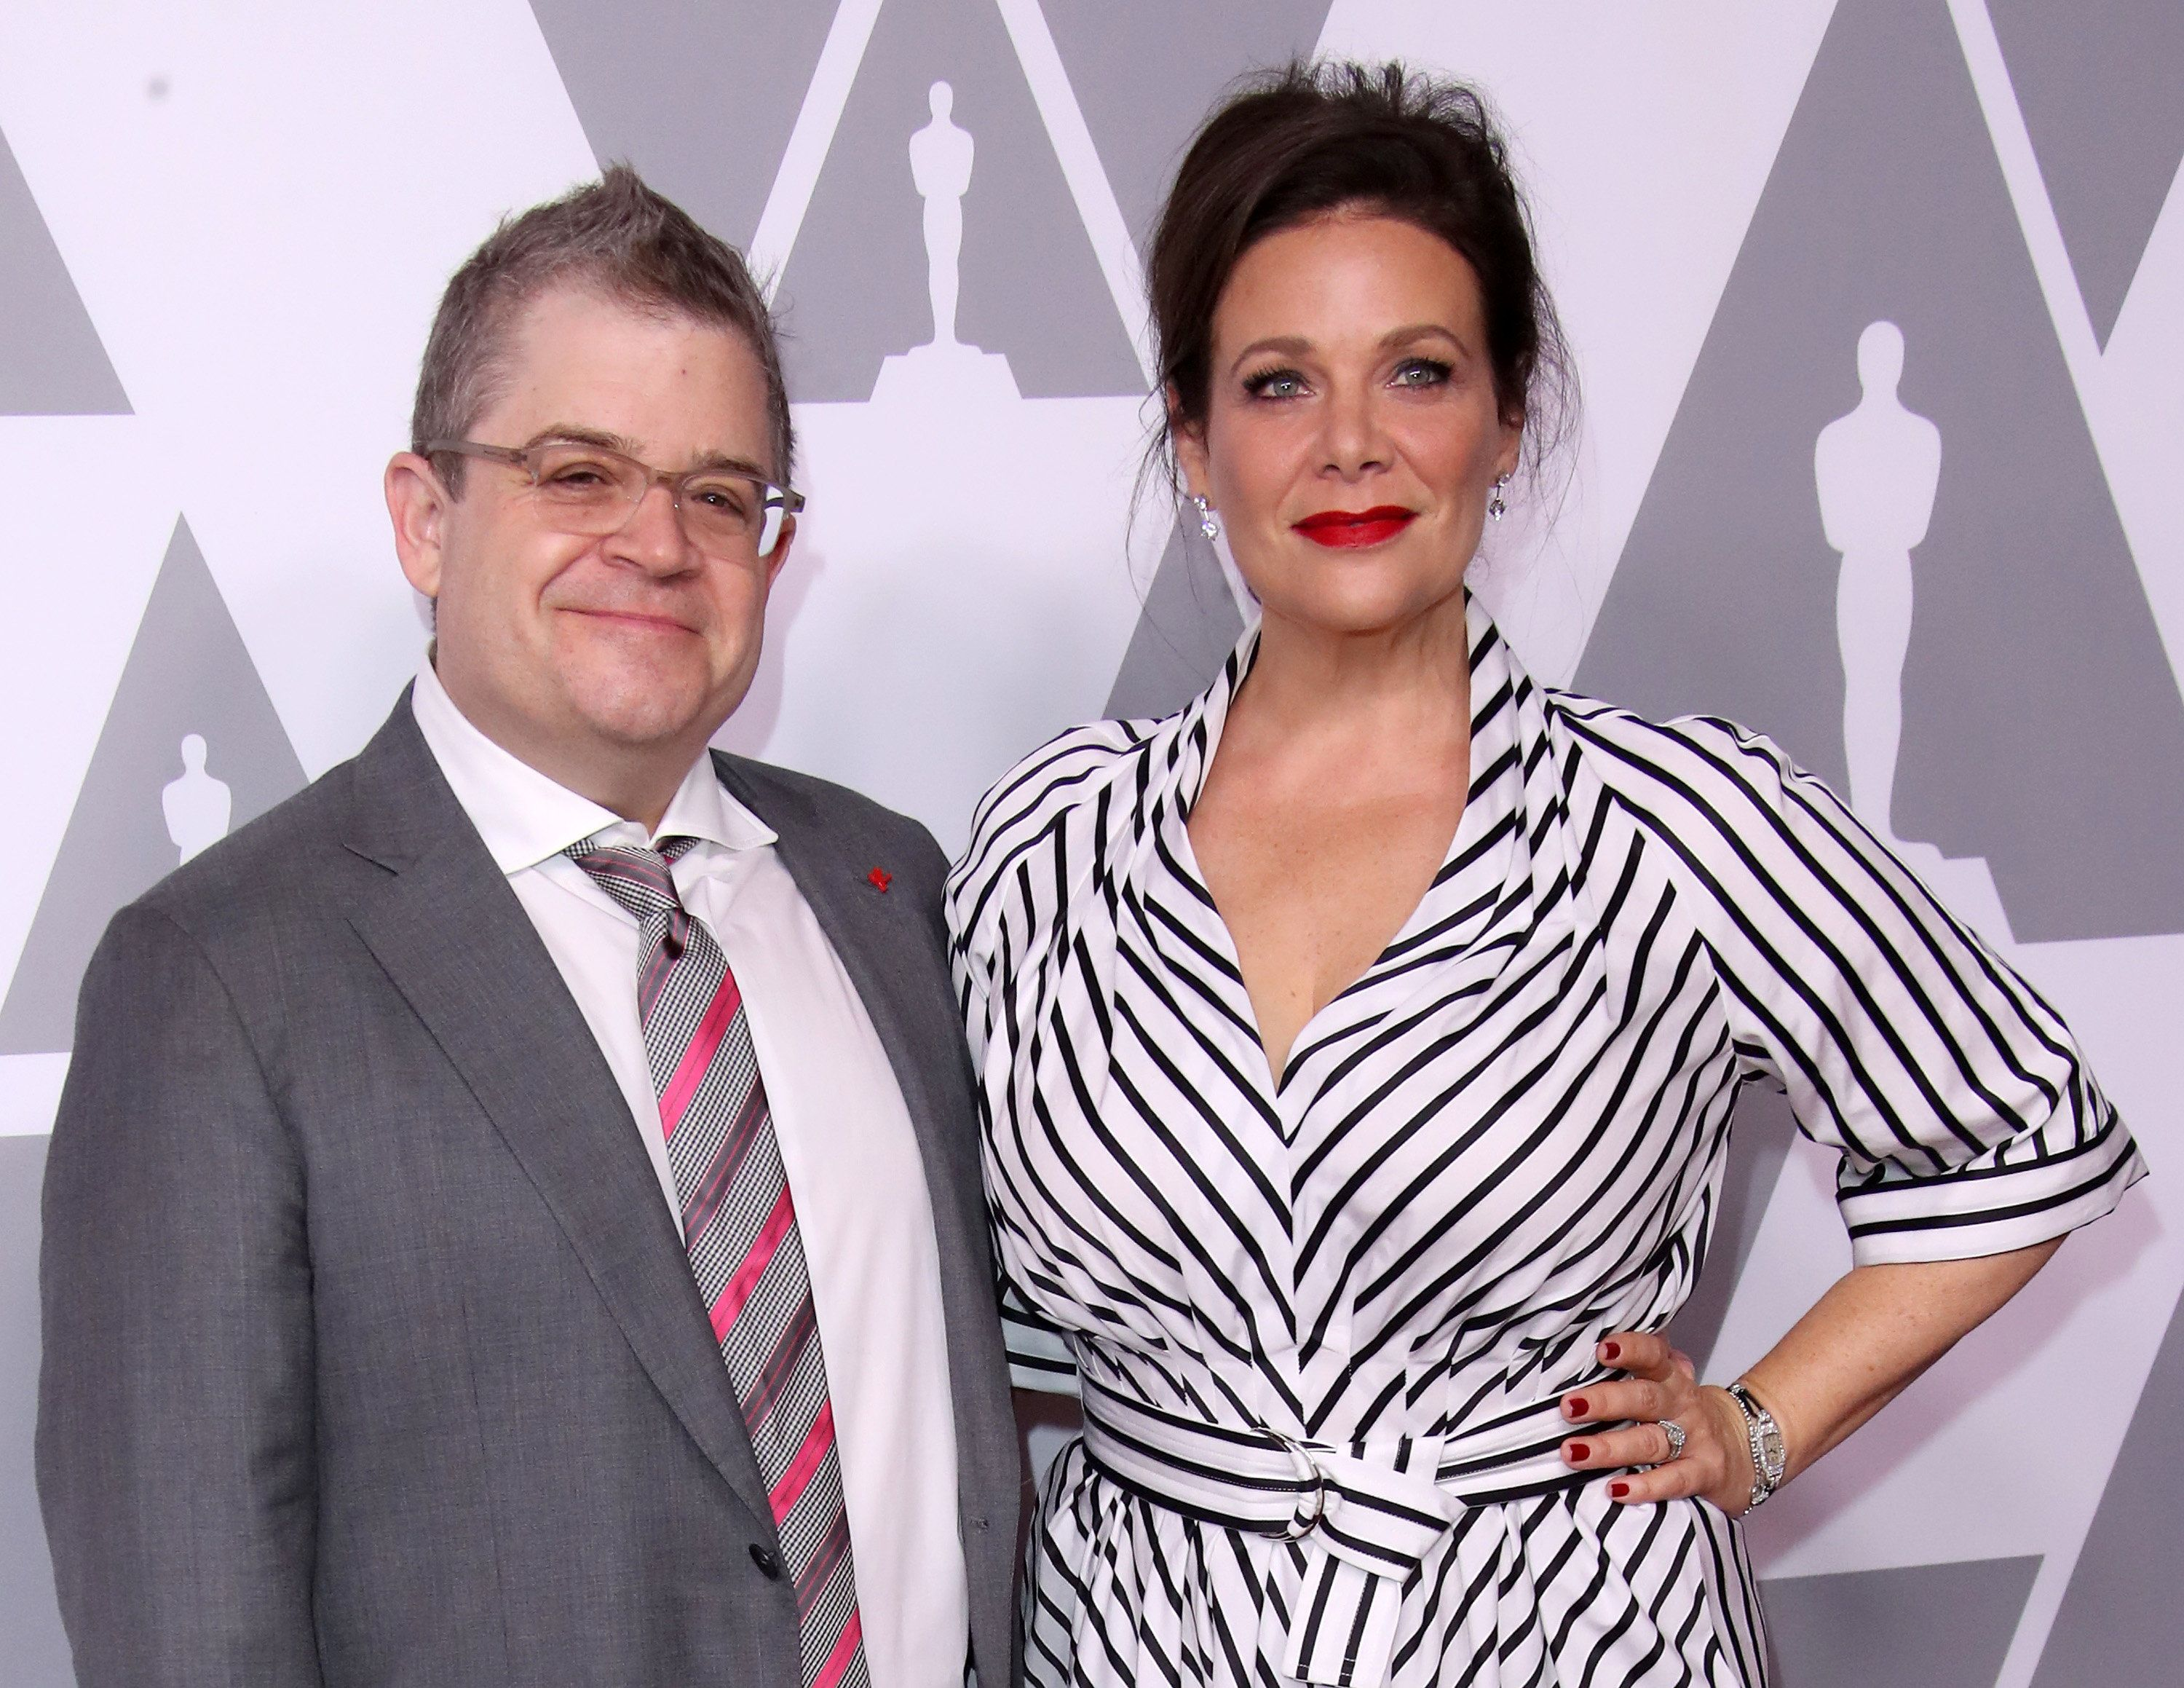 BEVERLY HILLS, CA - FEBRUARY 5: Actors Patton Oswalt (L) and Meredith Salenger attend the 90th Annual Academy Awards Nominee Luncheon at The Beverly Hilton Hotel on February 5, 2018 in Beverly Hills, California. (Photo by Dan MacMedan/Getty Images)